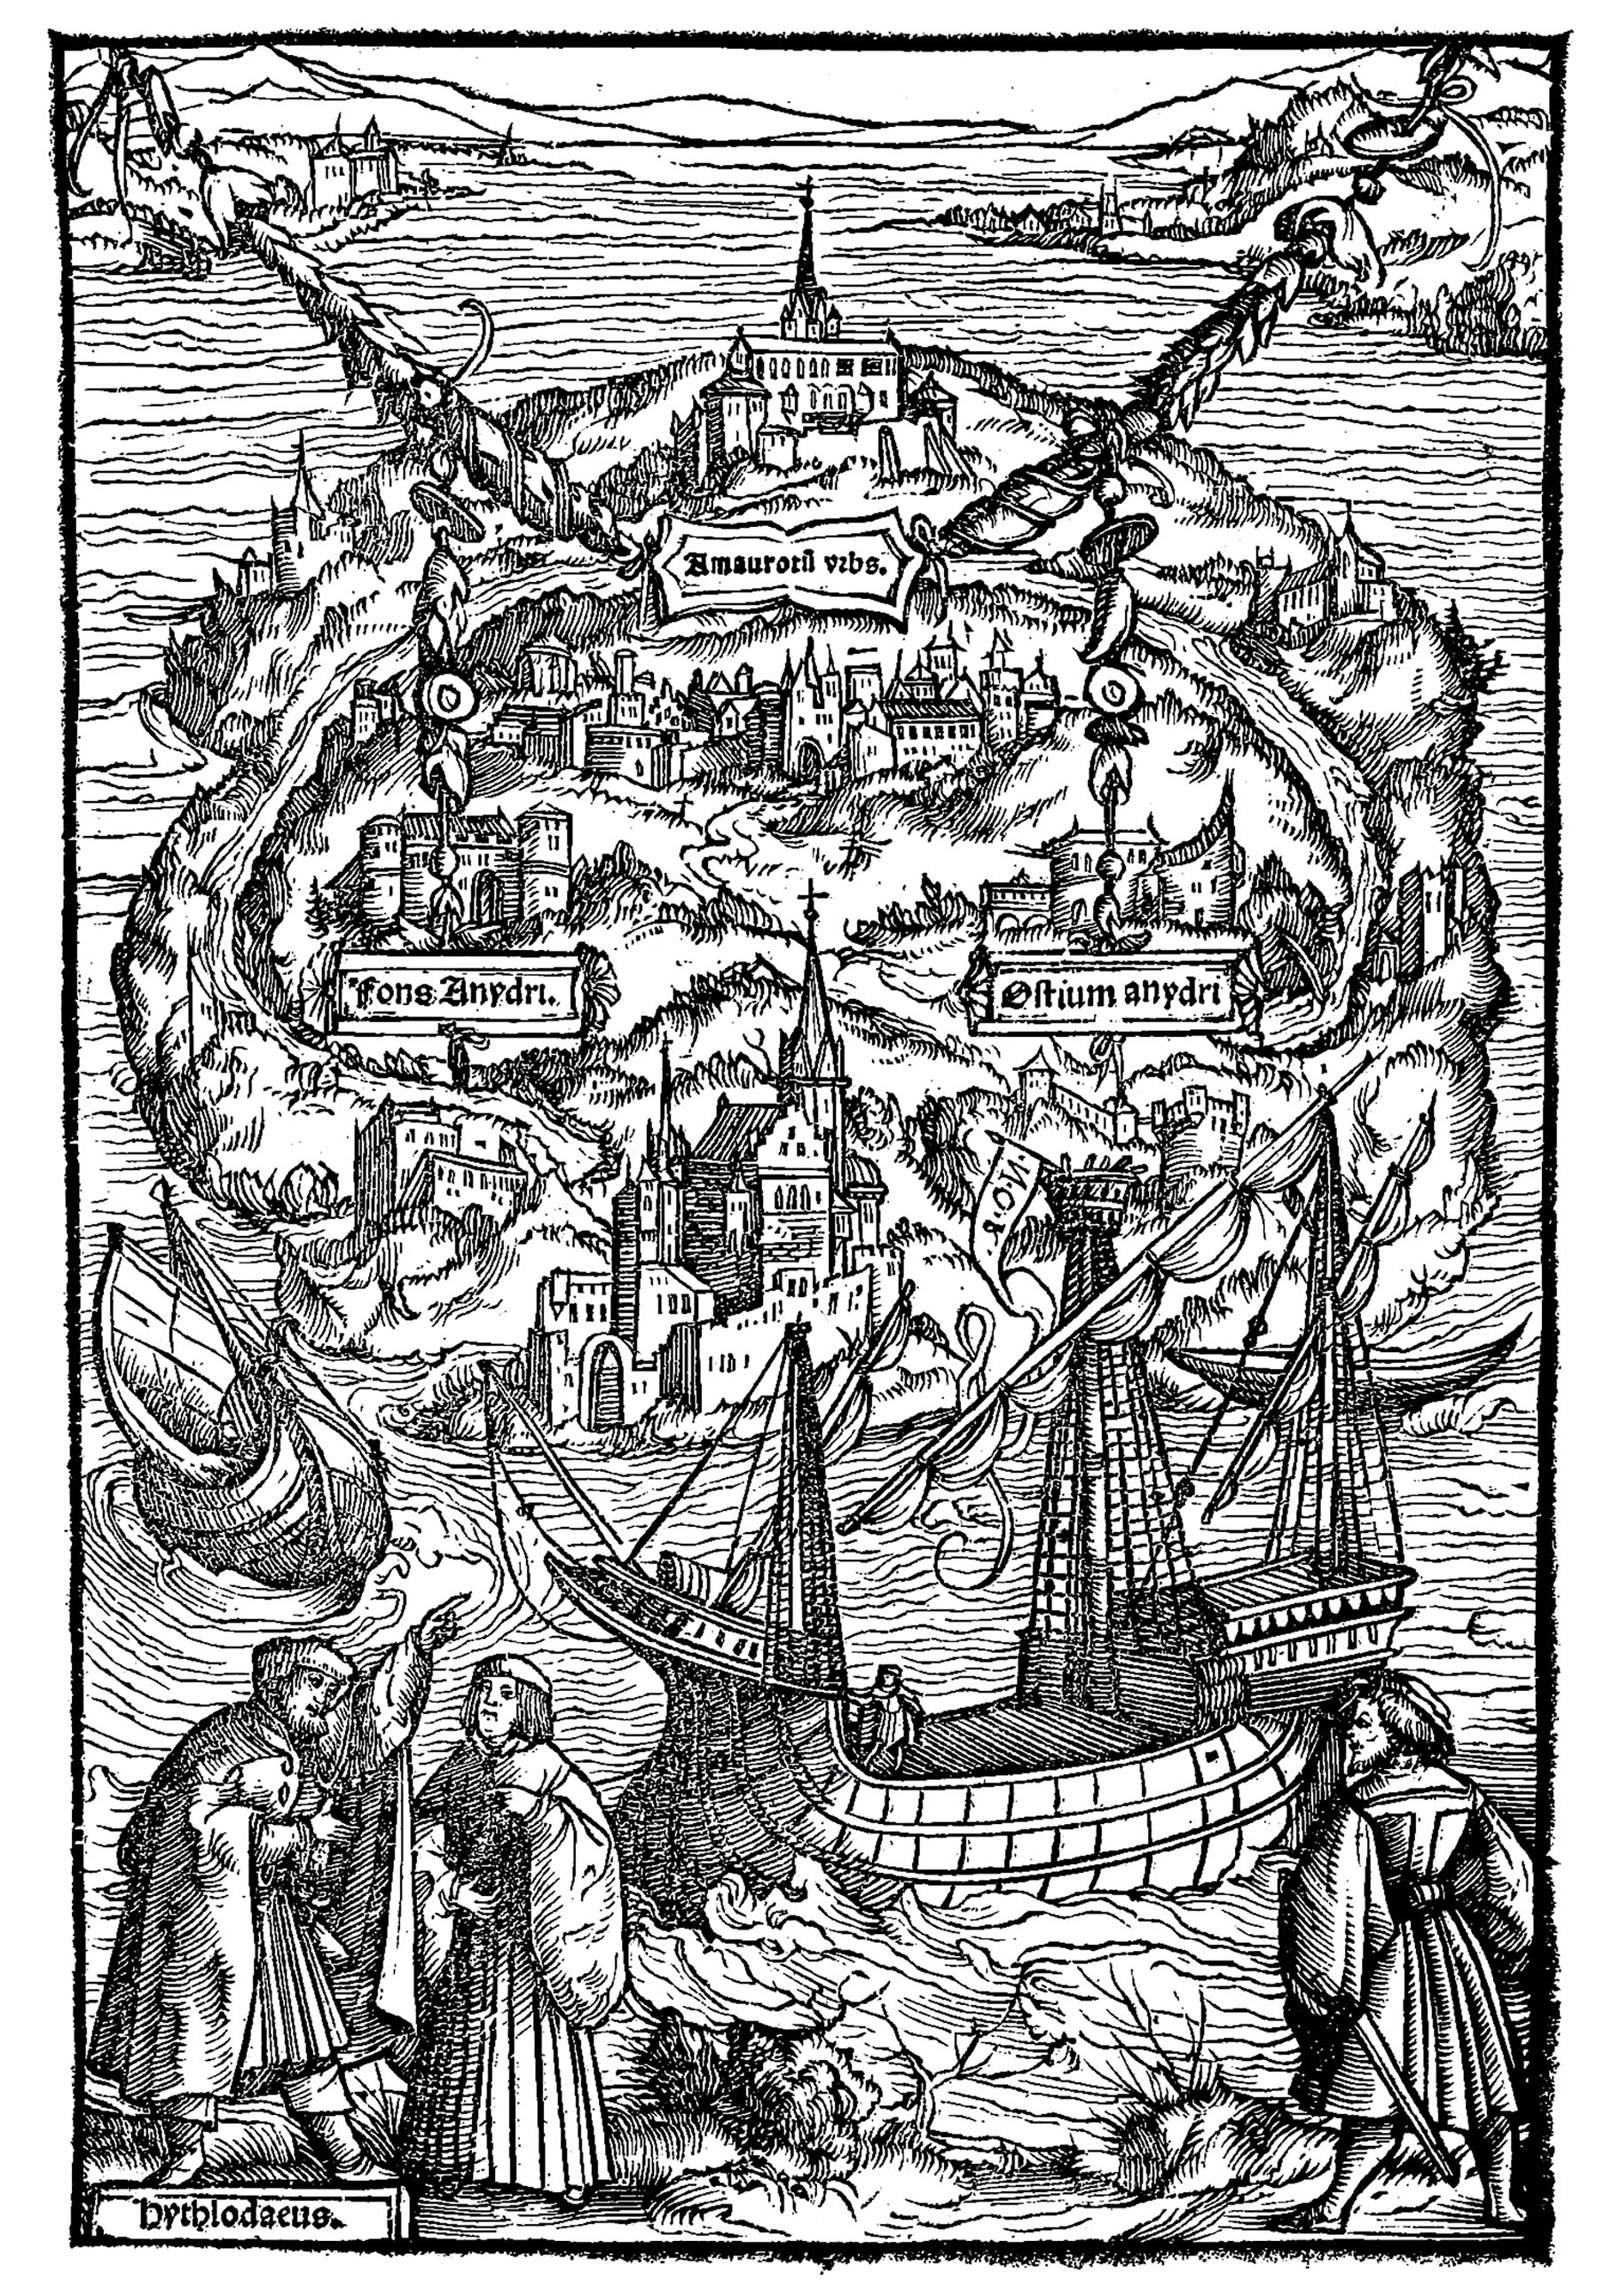 Engraving by Ambrosius Holbein for a 1518 edition of Thomas More's Utopia book. The lower left corner shows the traveler Raphael Hythlodeus describing the island.